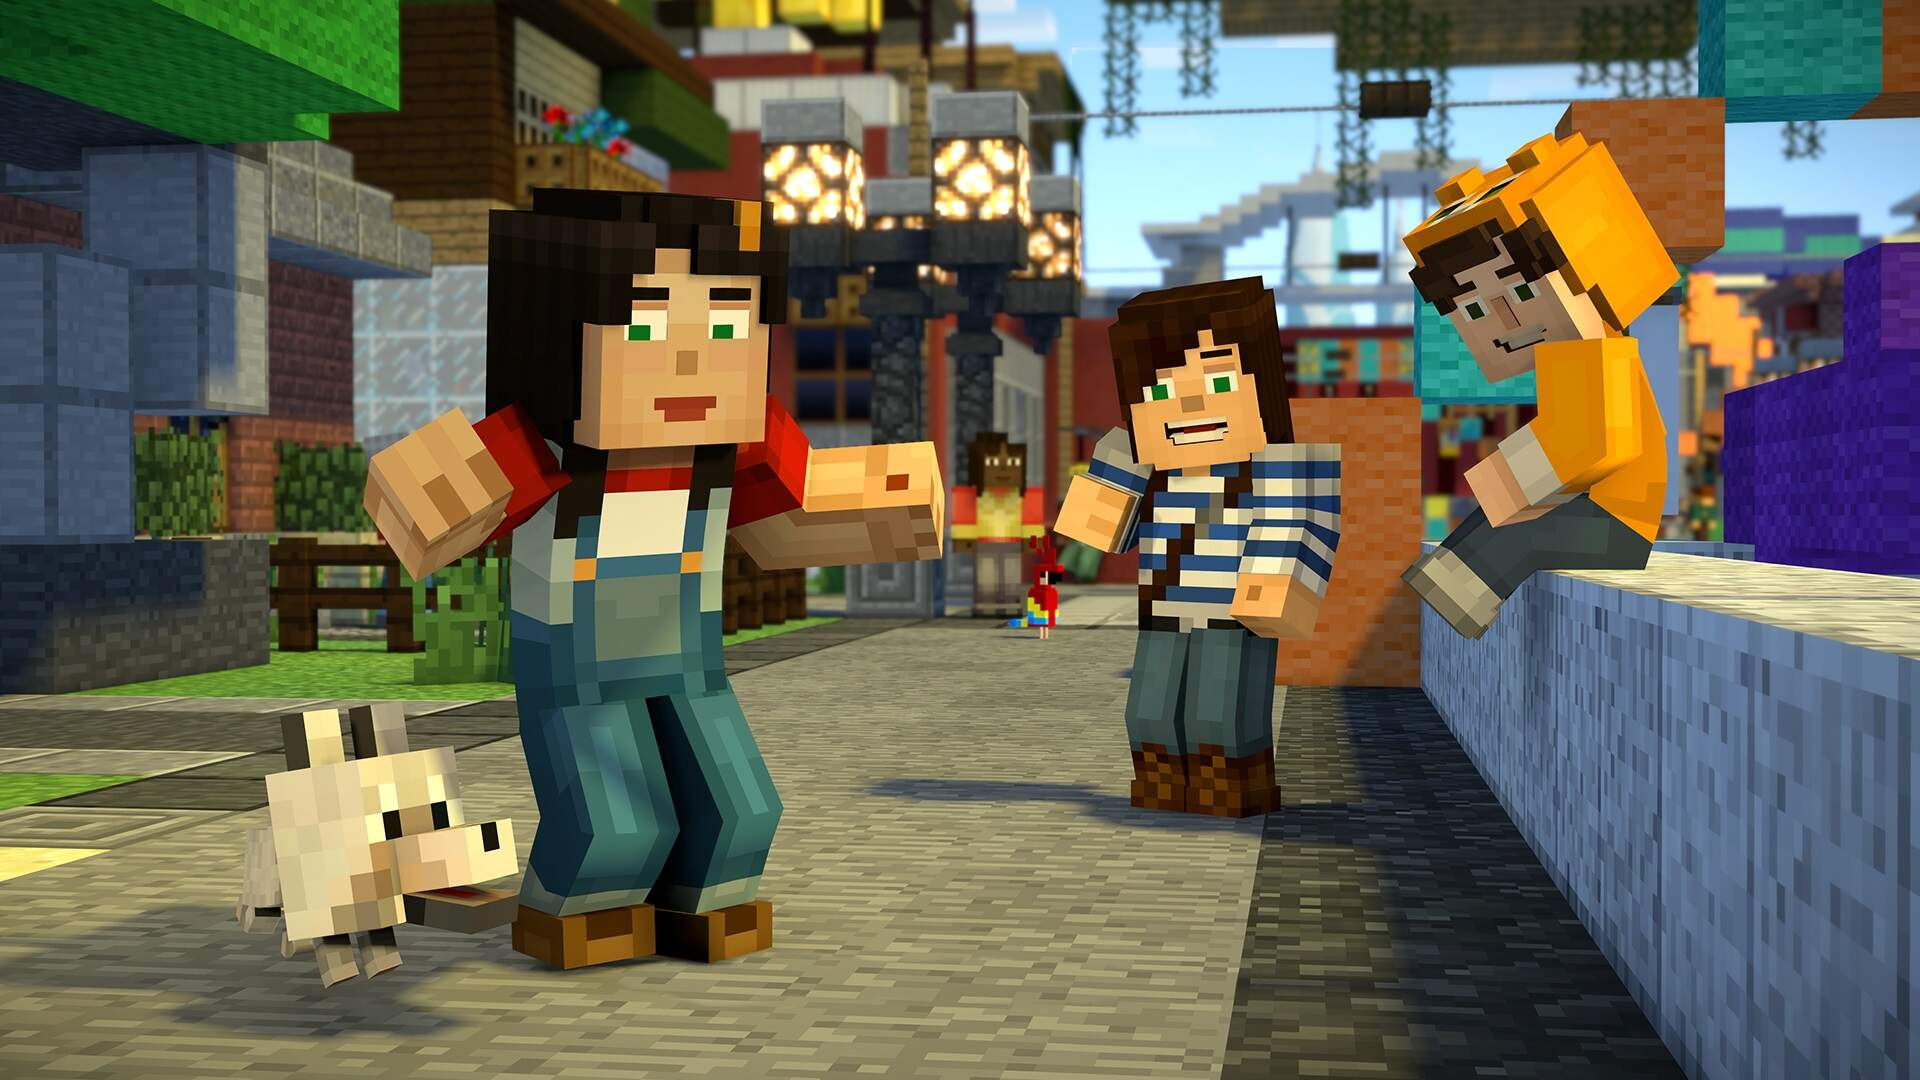 Telltale's Minecraft: Story Mode is Getting Delisted From Online Storefronts Soon